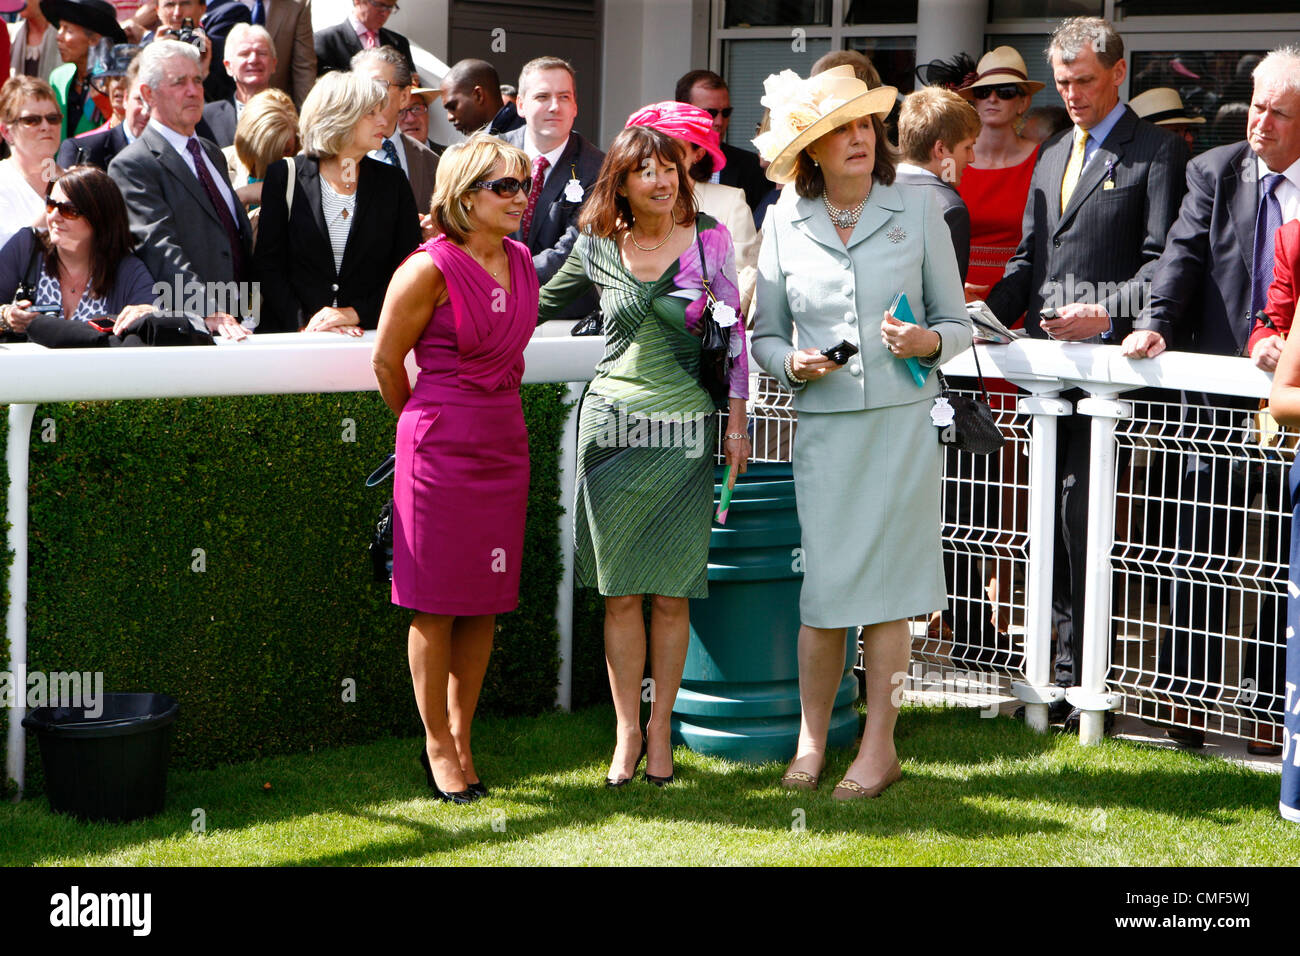 reasonable price another chance huge discount 01.08.12 CHICHESTER, ENGLAND Lady Jane Cecil ( MIDDLE) with ...